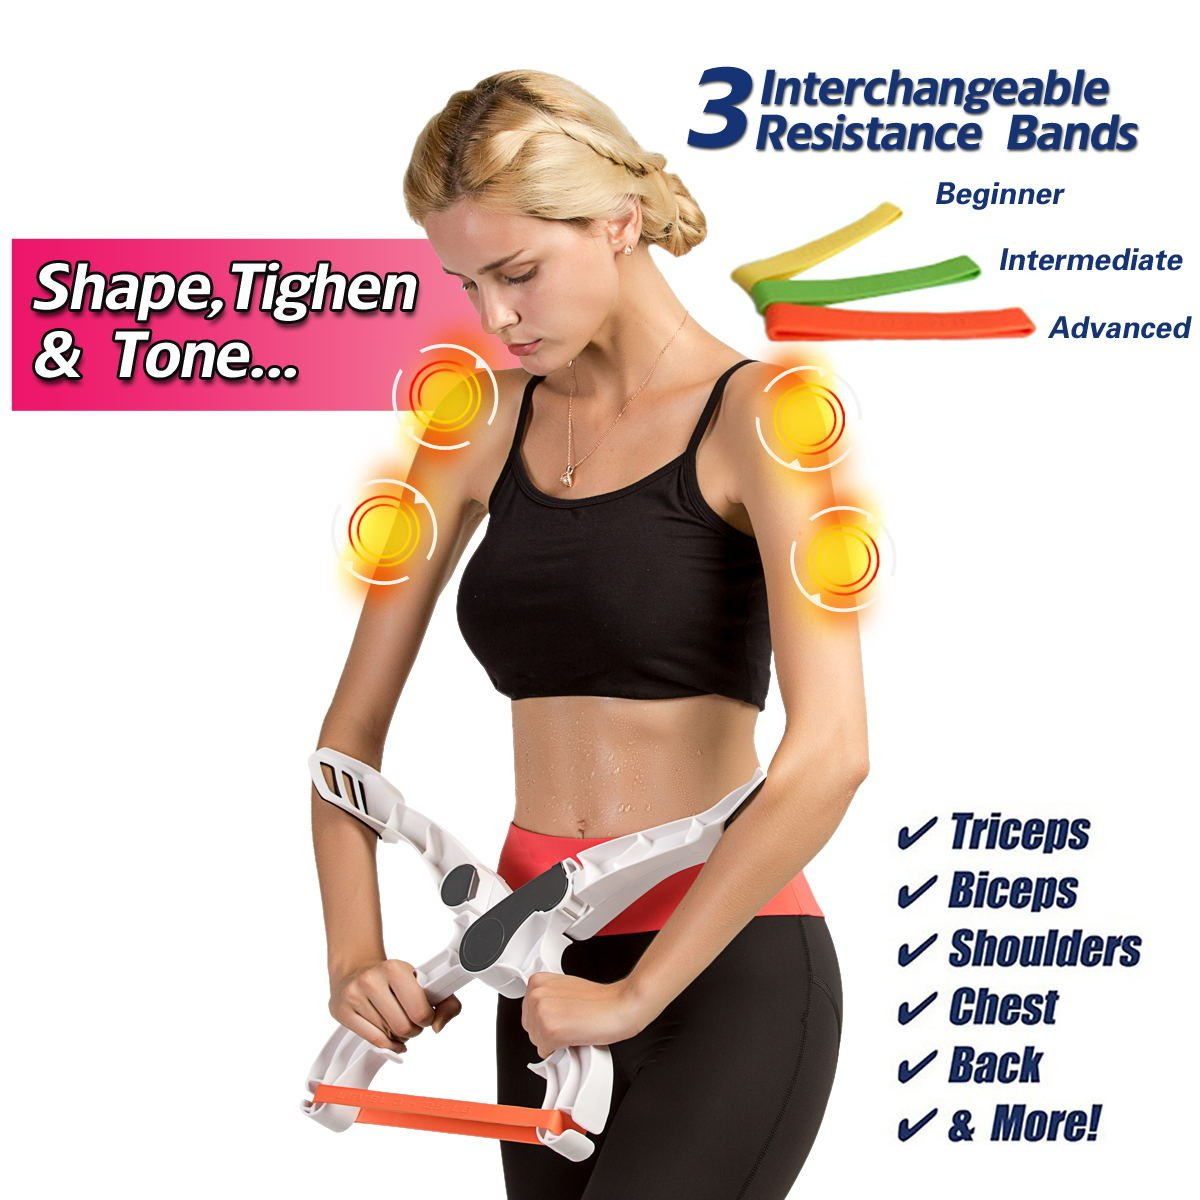 Women Arm And Shoulders Band Exerciser Upper Body Workout